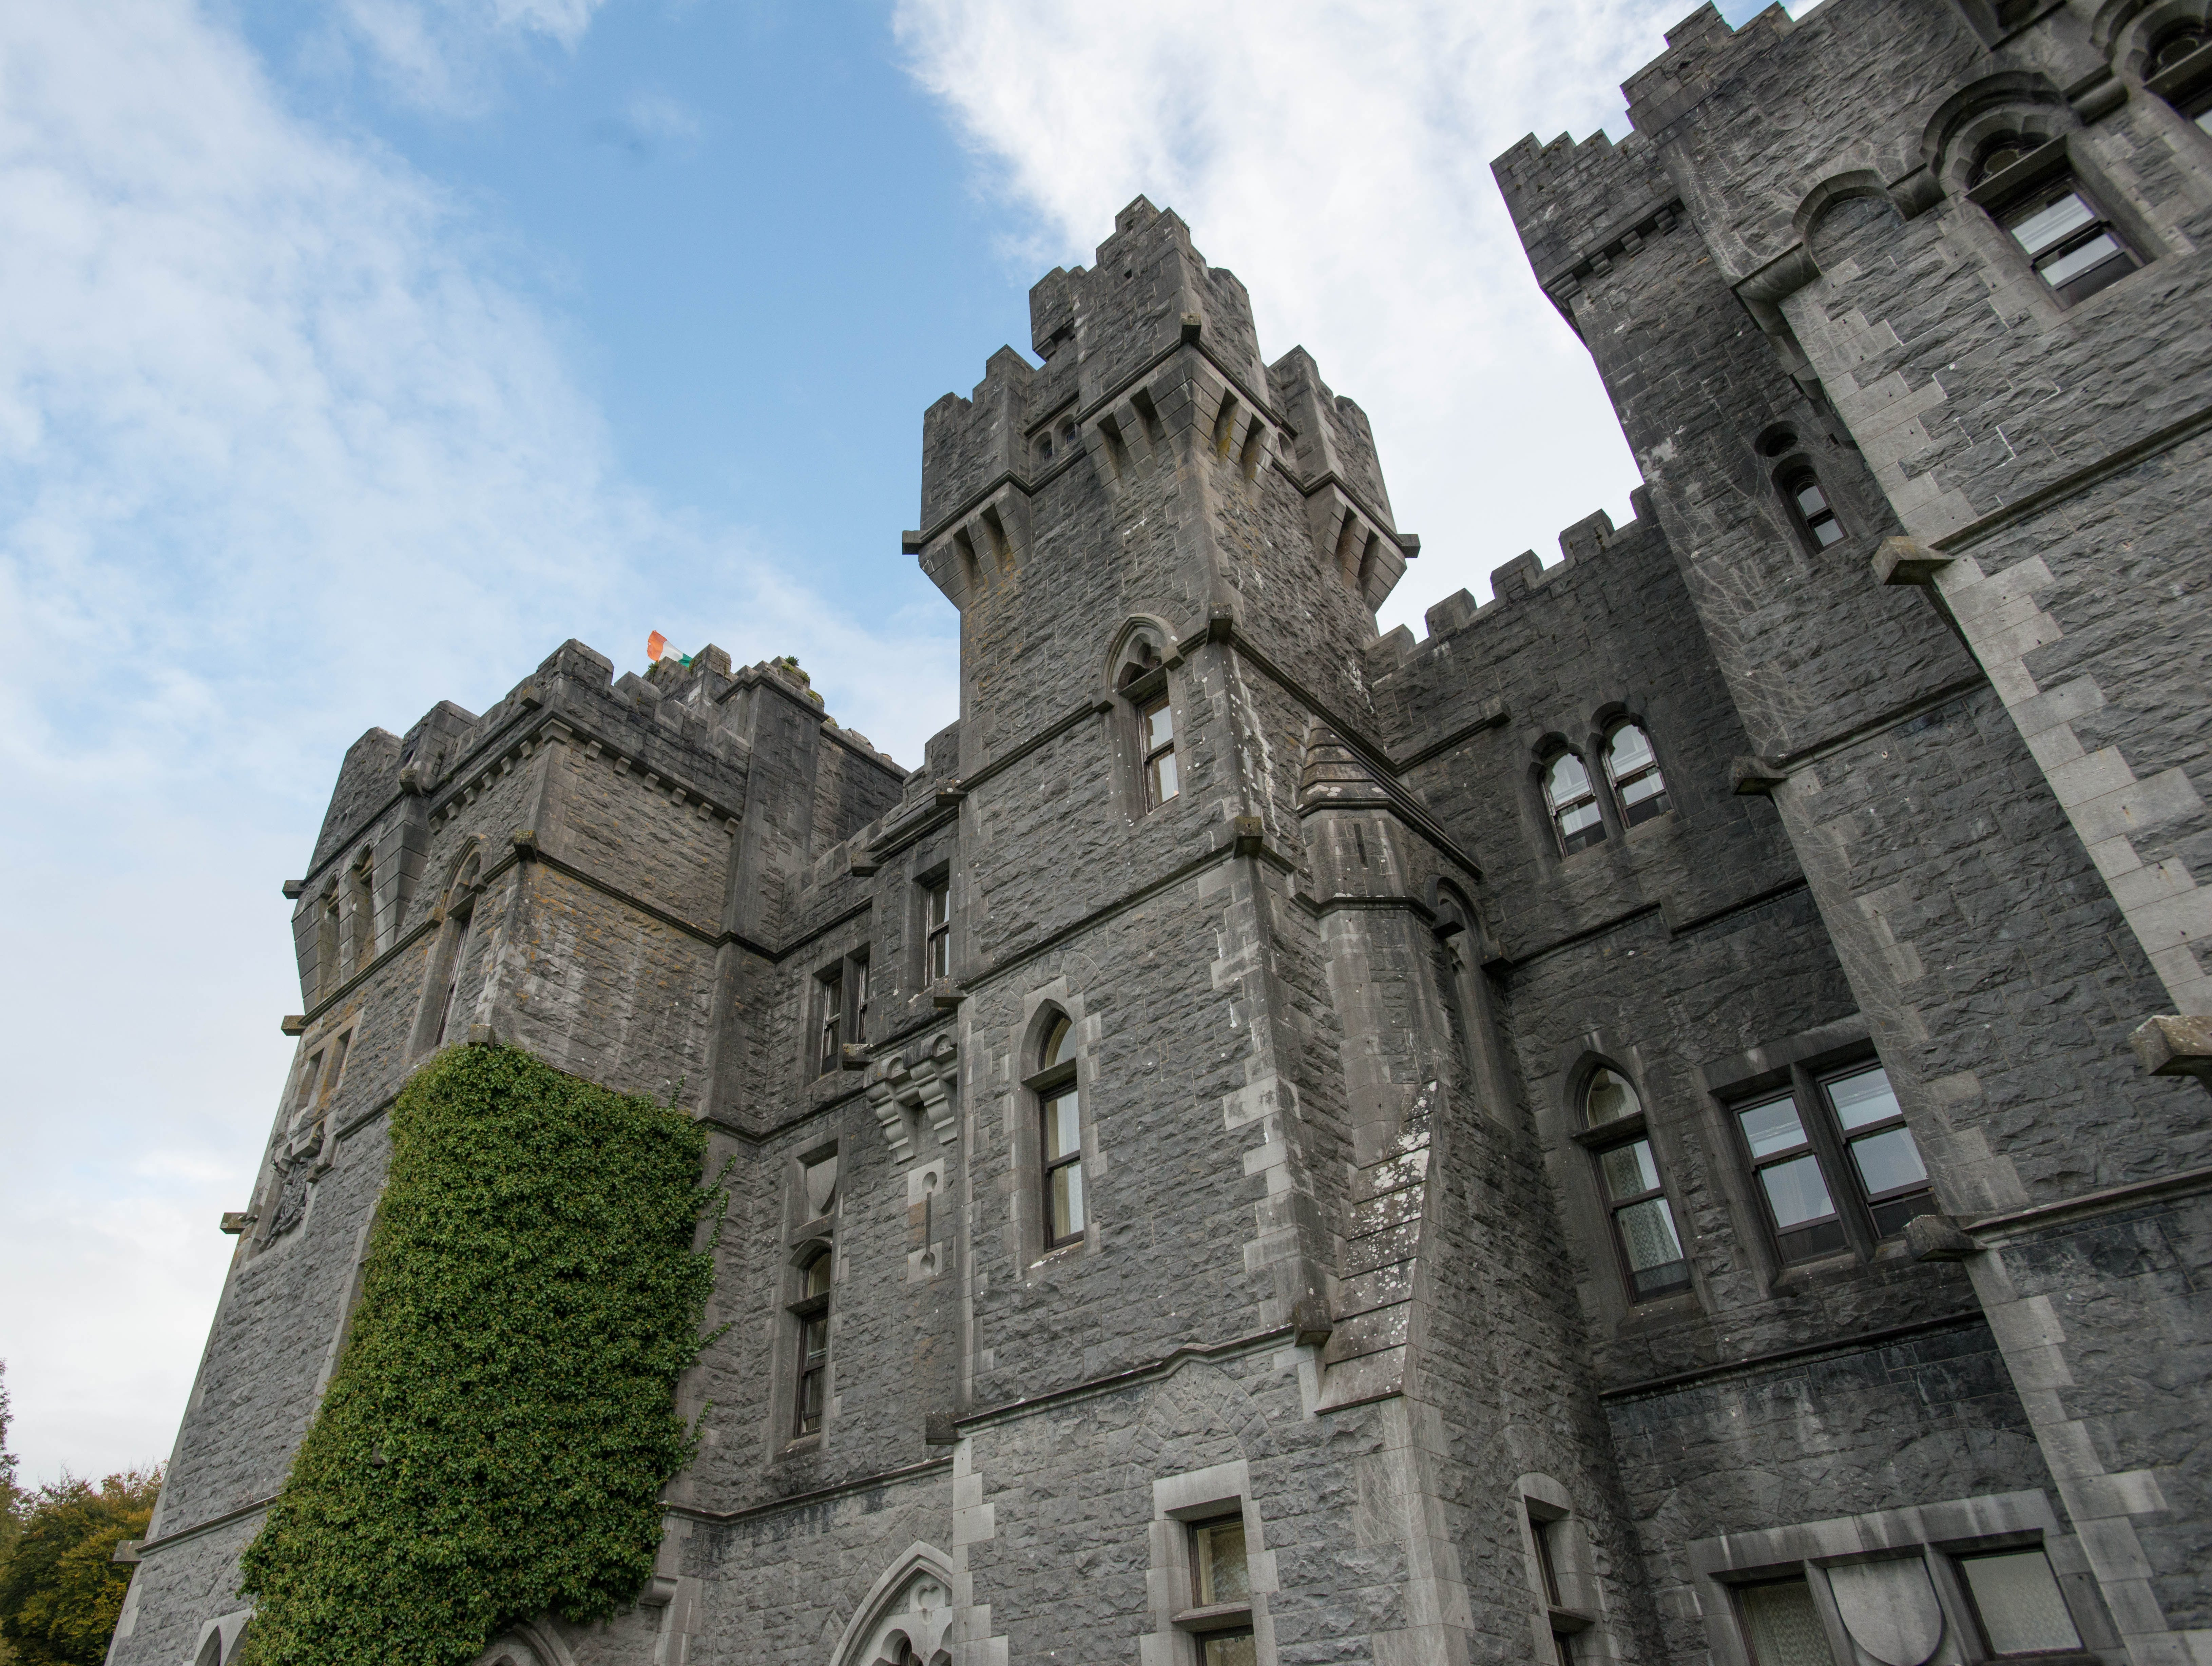 Ashford Castle, Ireland: Ashford Castle embodies the fantasy of the Irish castle hotel, featuring a massive historic stone facade, complete with towers and turrets; gorgeous, manicured grounds; a stunning setting on a huge lake; and common spaces that are truly grand, with rich wood paneling, chandeliers, and antique furniture. The wide range of estate activities includes falconry lessons, boat tours on the lake, golf on the 9-hole course, clay shooting, and archery.